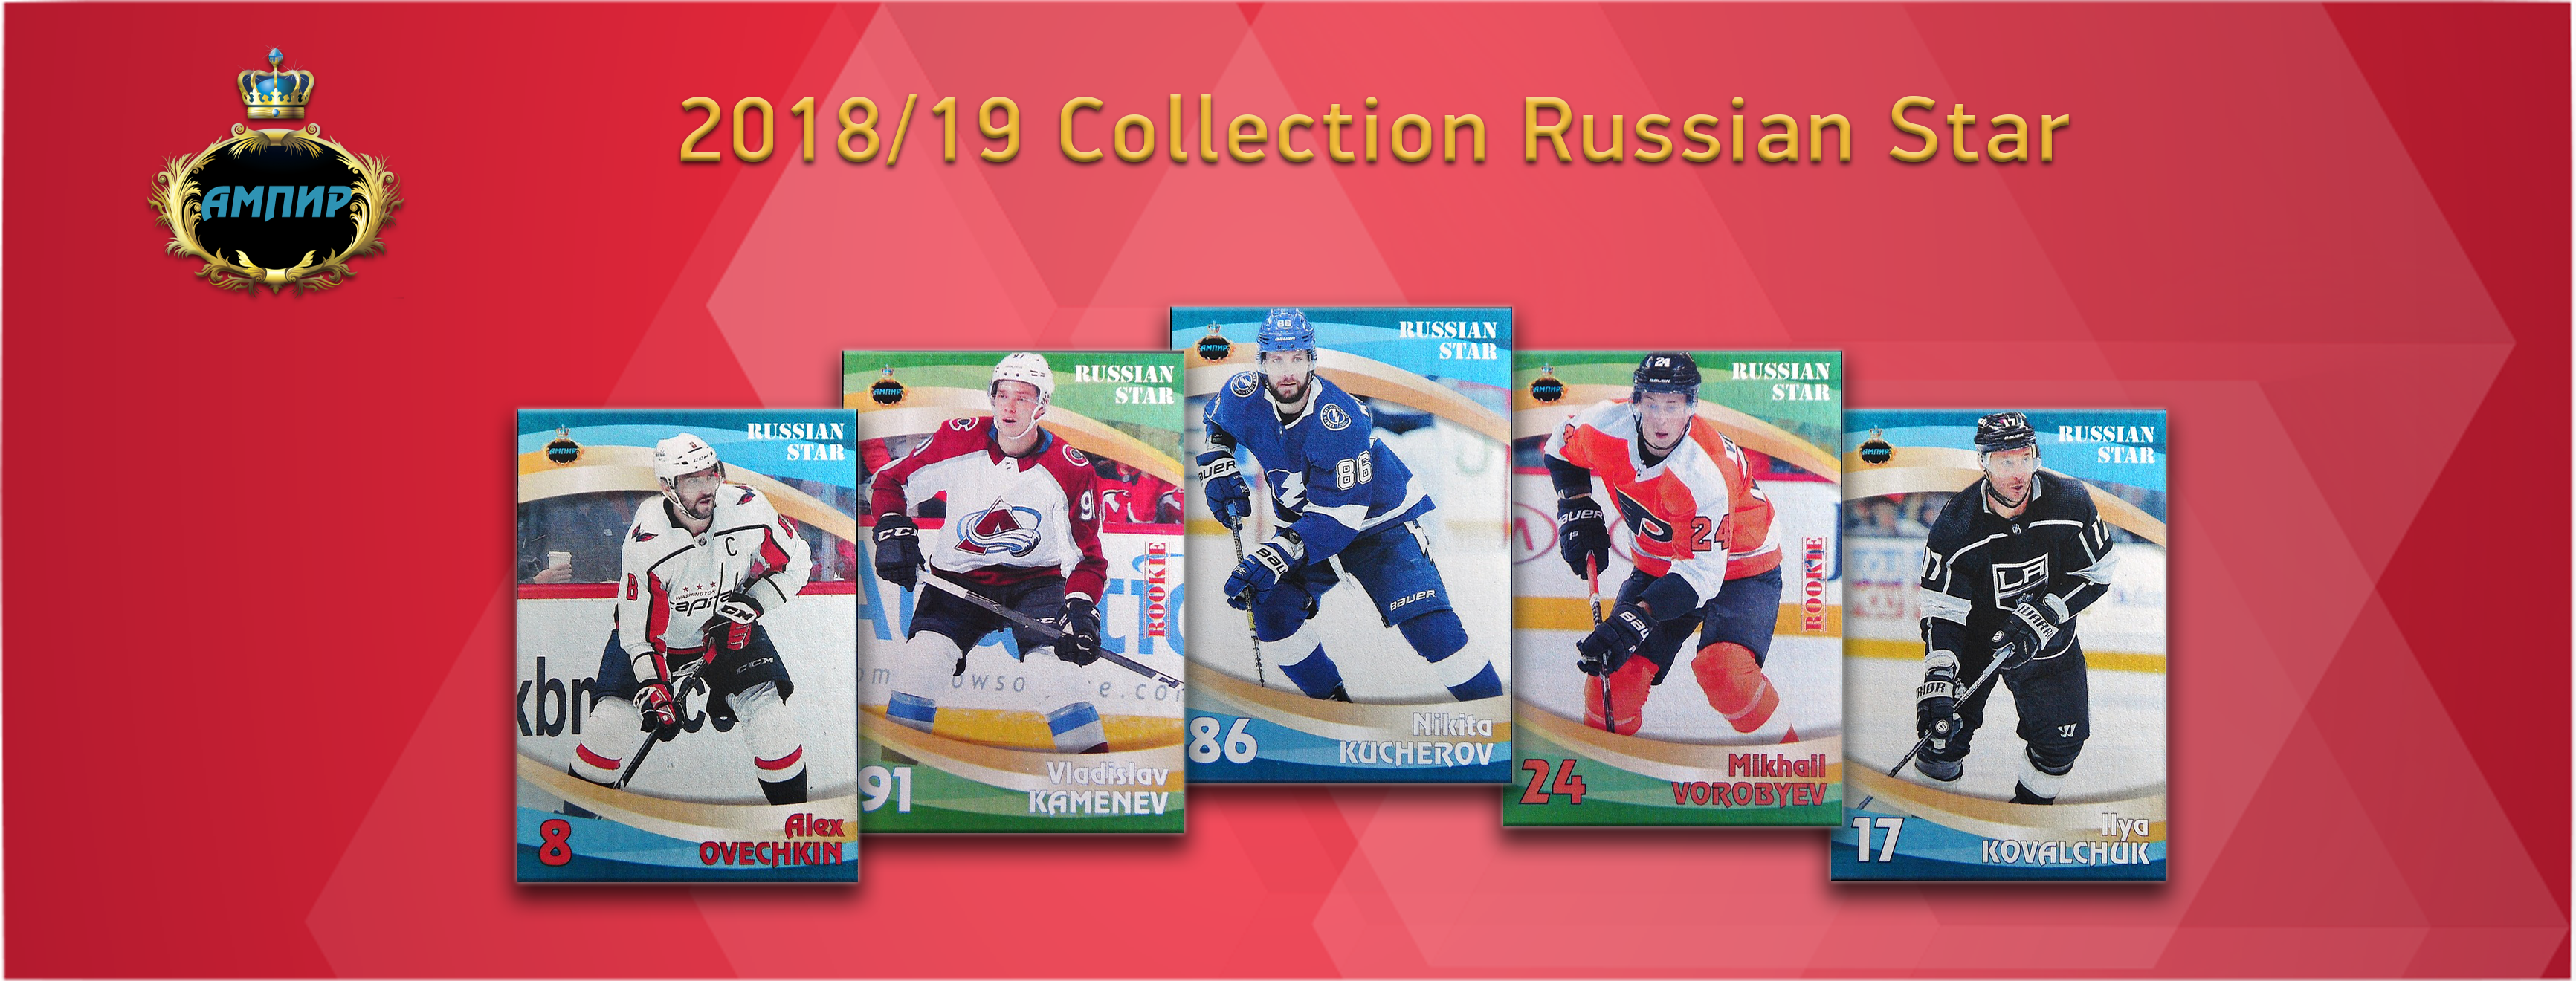 2018/19 Collection Russian Star